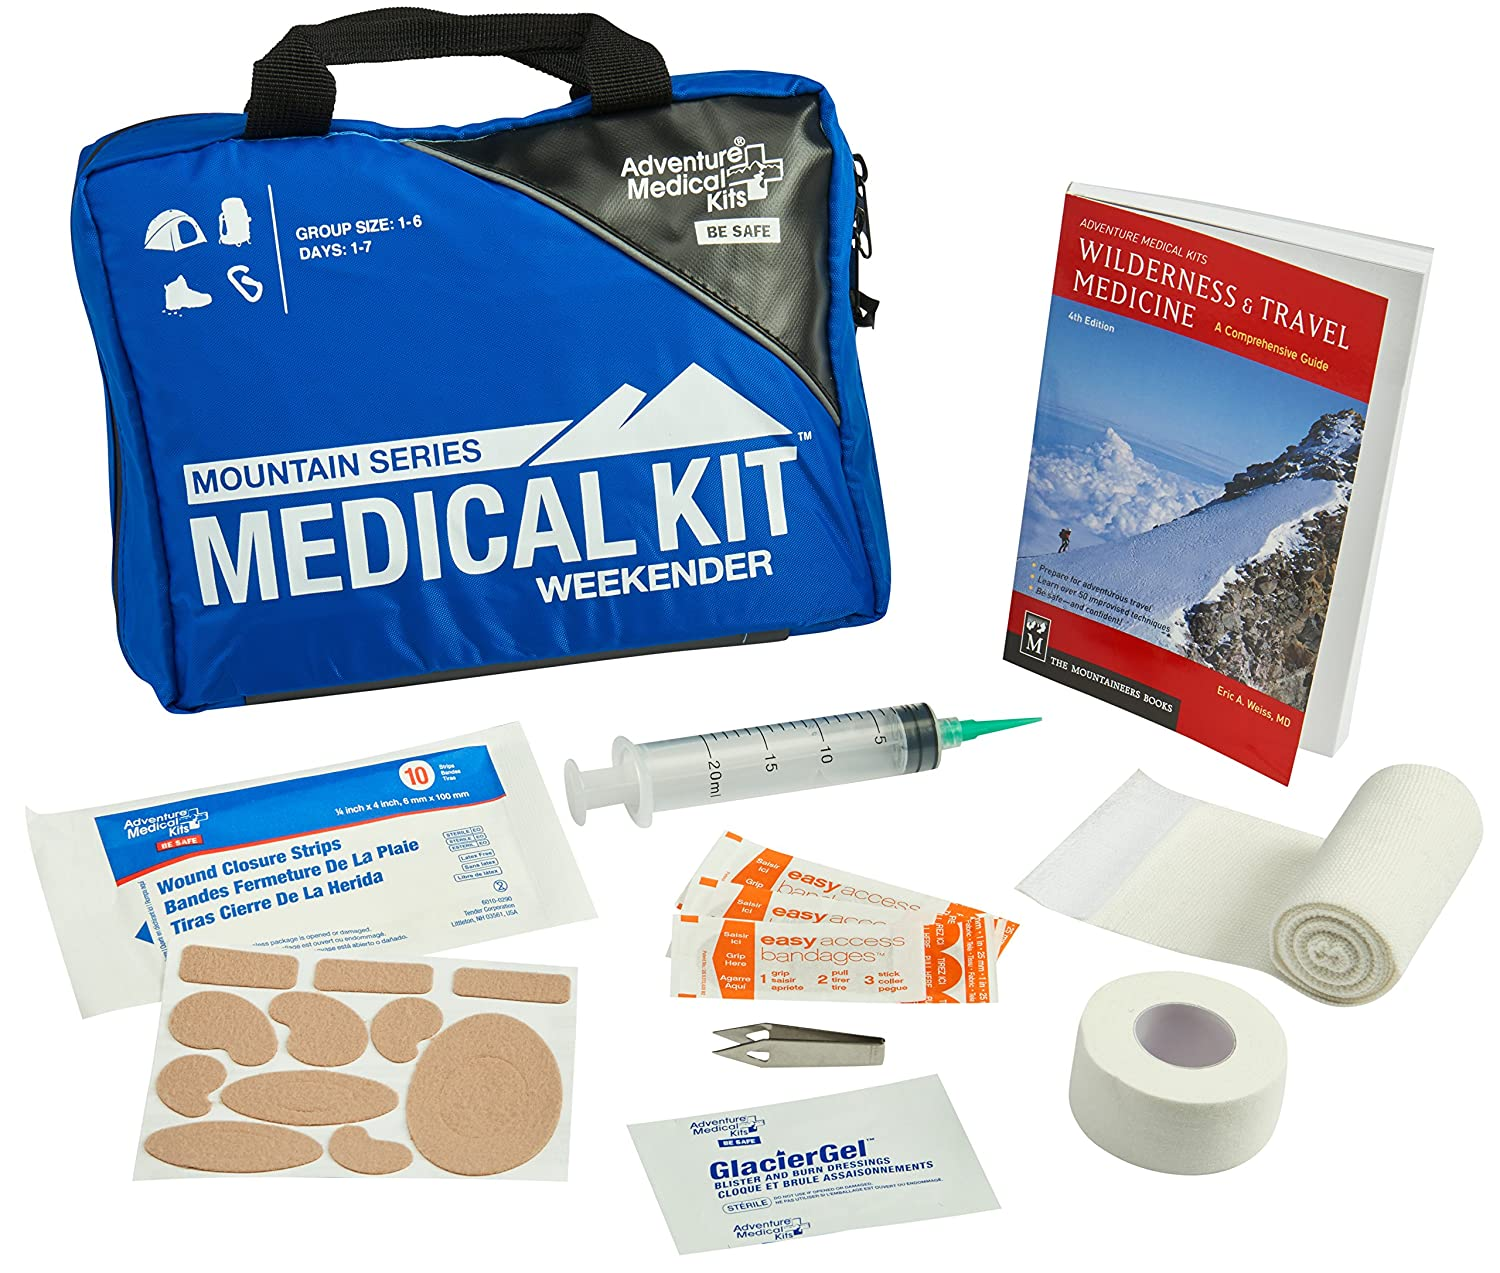 Adventure Medical Kits Mountain Series Weekender First Aid Kit, Backcountry  Medical Care,